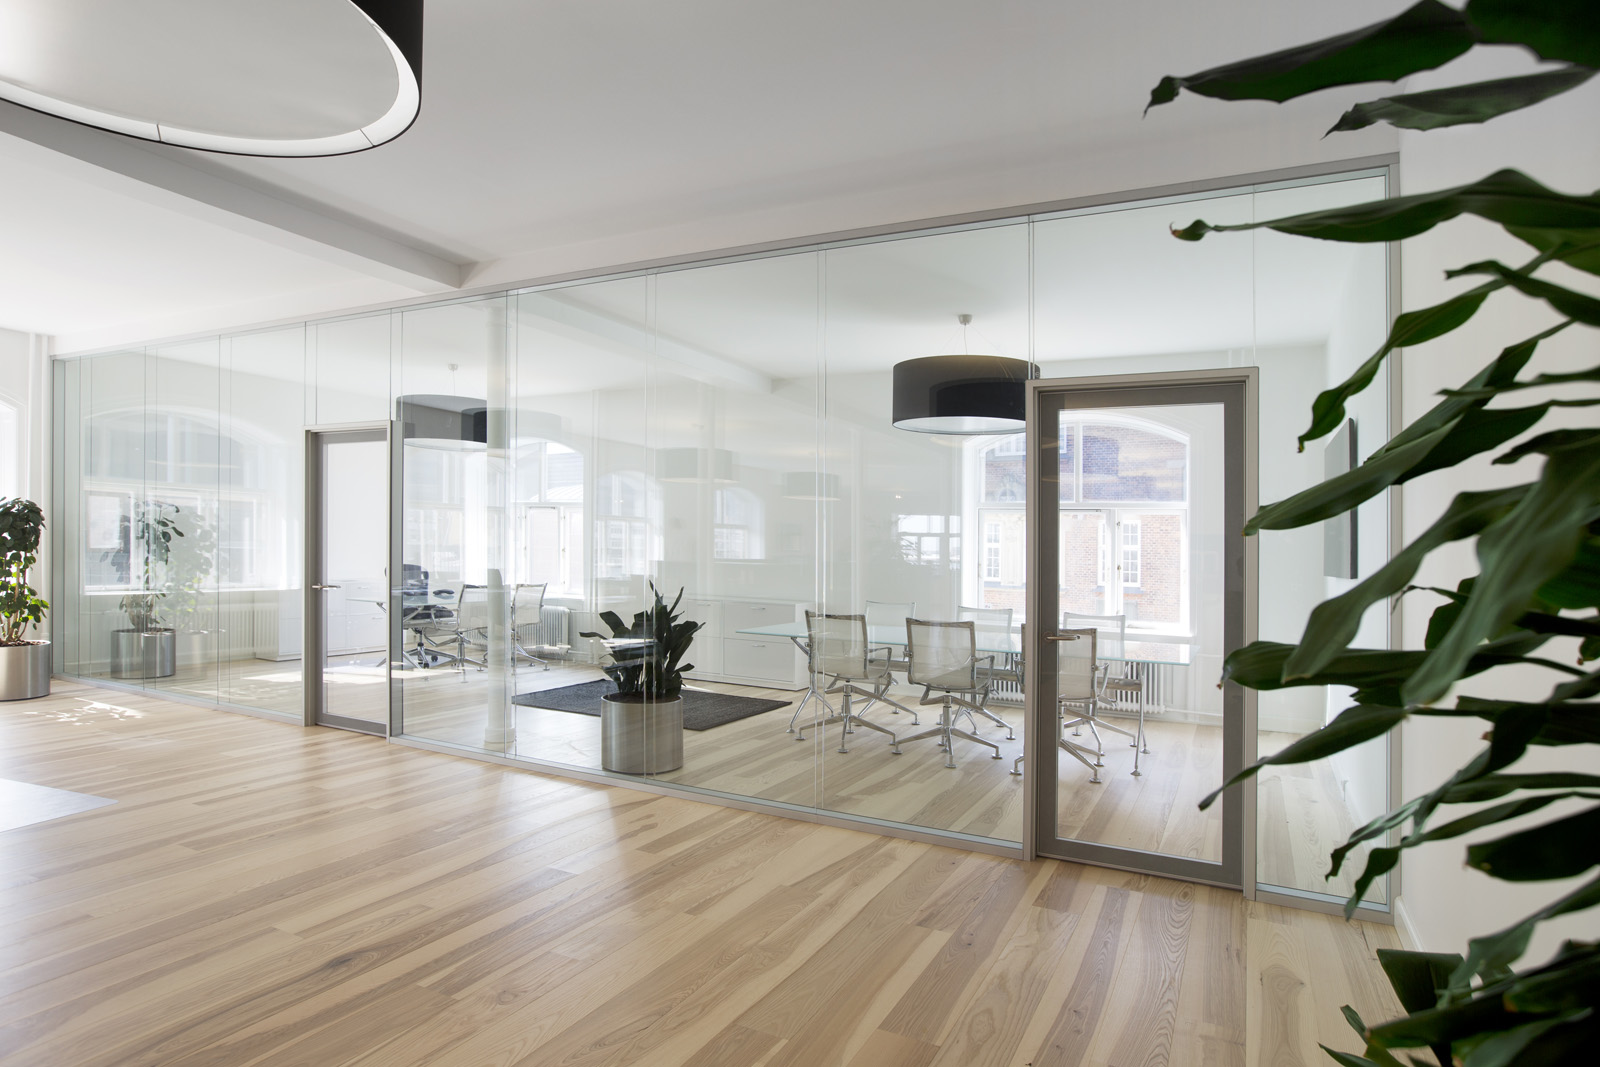 Deko FG 2 – Double glazed partition with a high level of acoustic protection